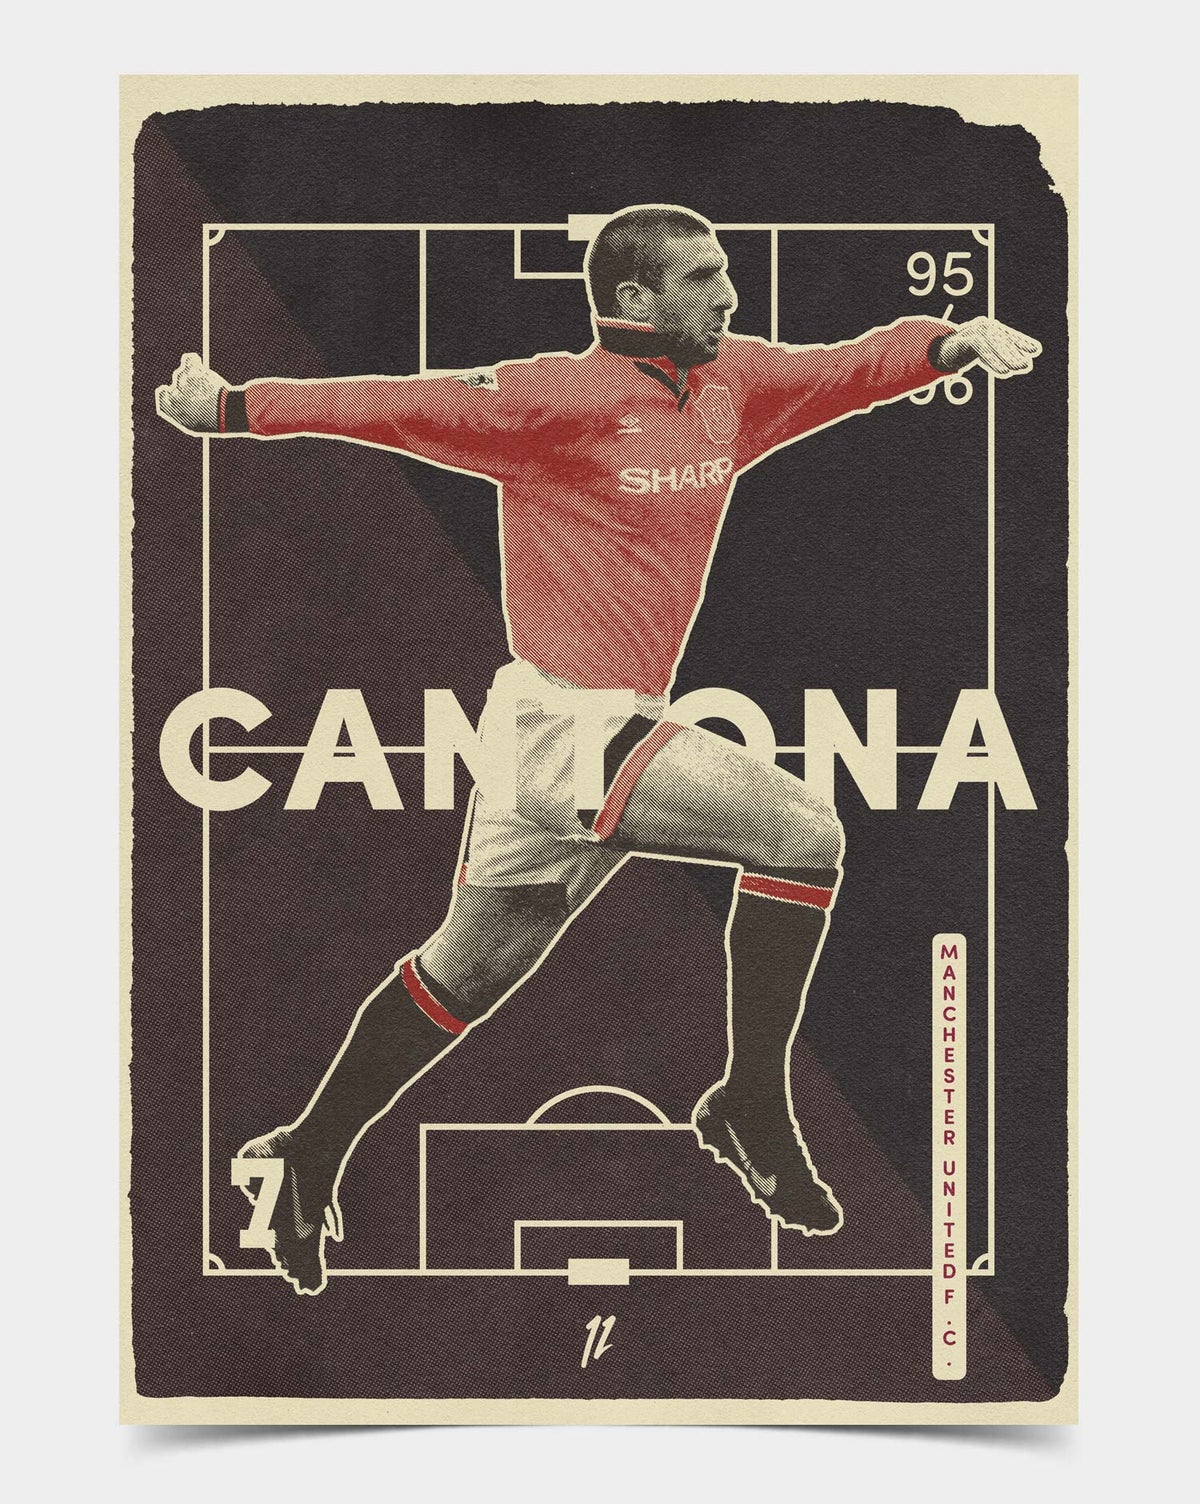 Image of Cantona Retro